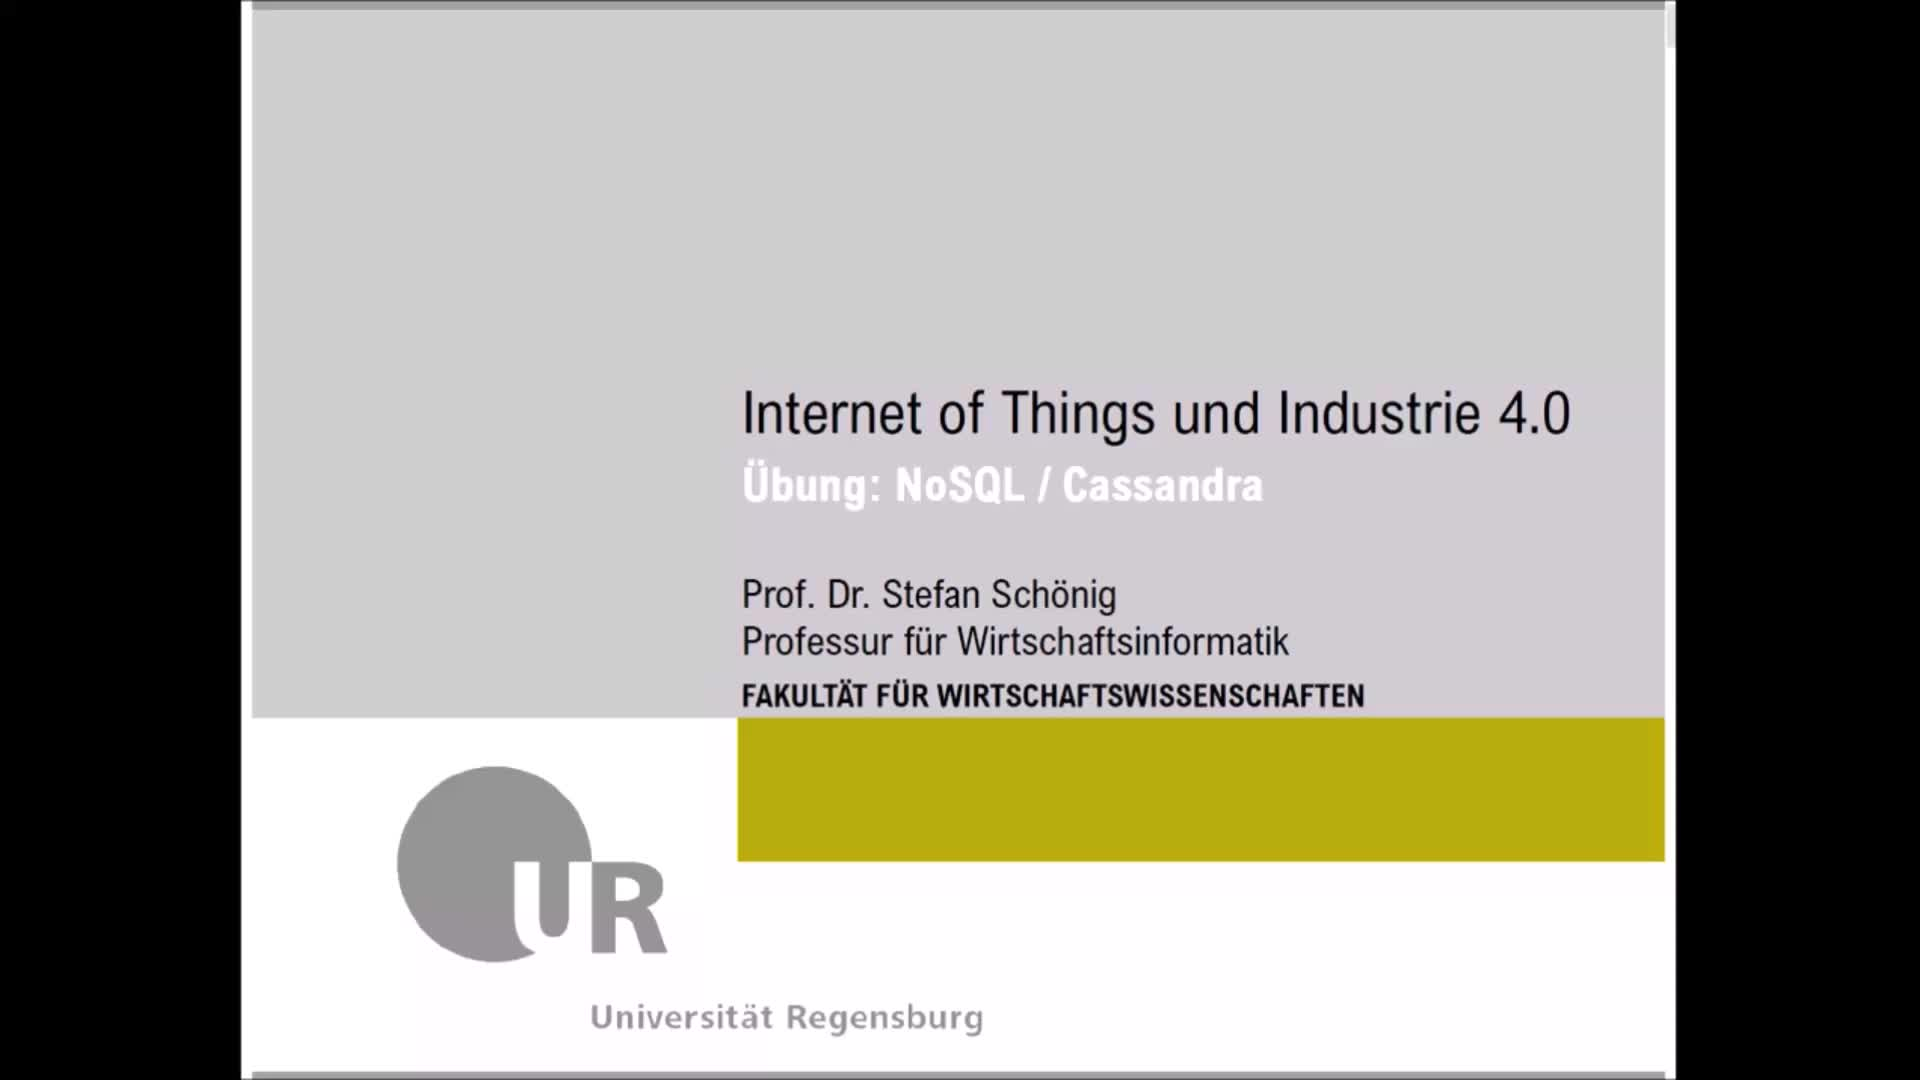 SS 2020 - Internet of Things und Industrie 4.0 - Übung 5 (NoSQL - Apache Cassandra)